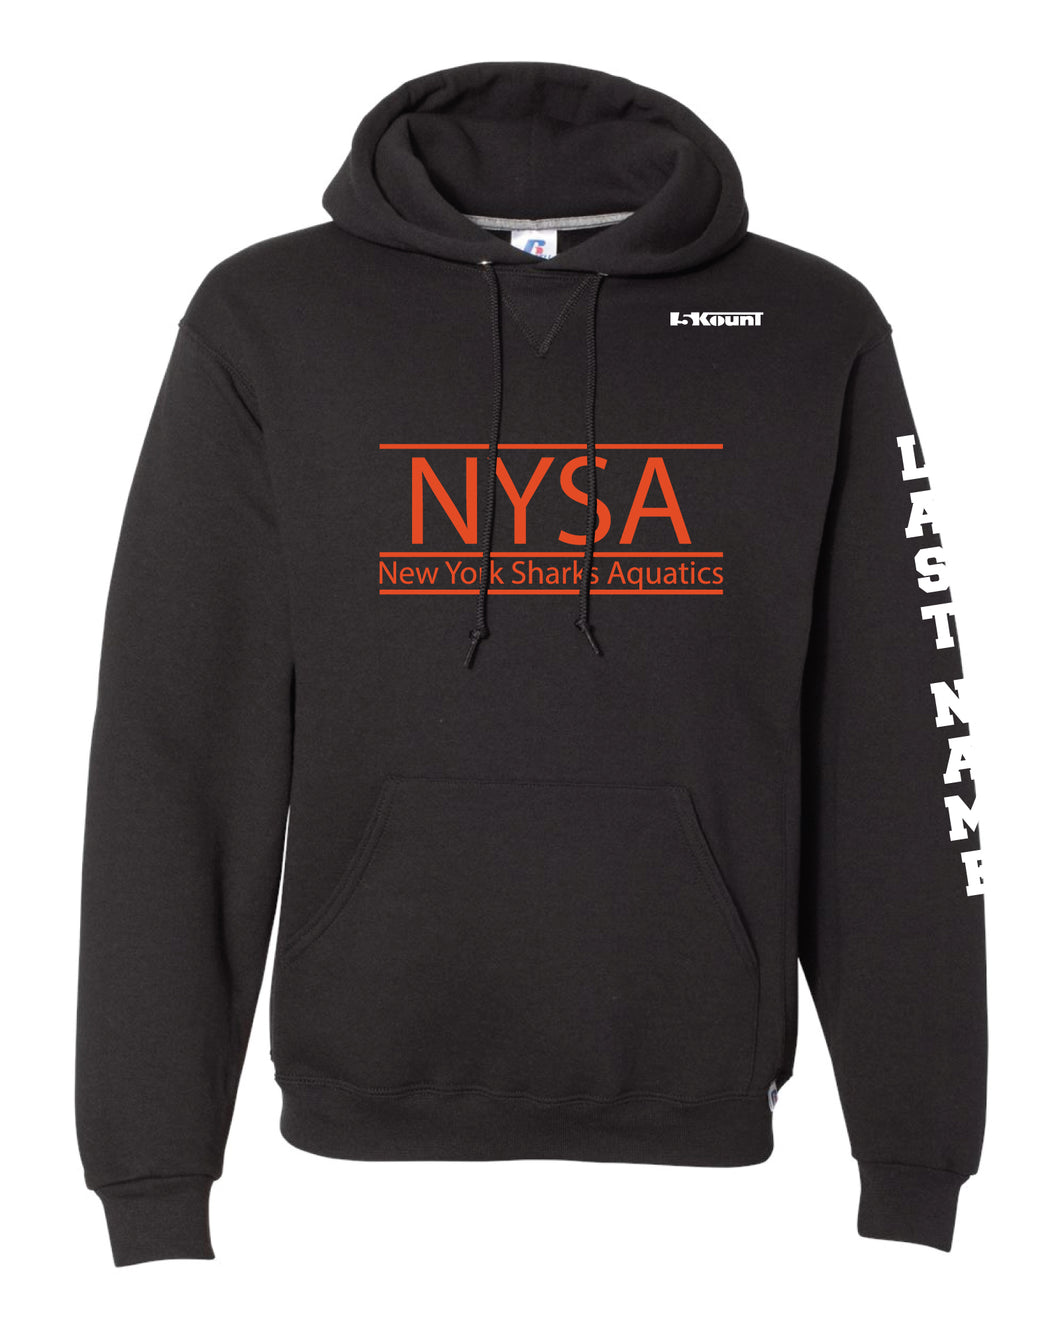 NYSA Russell Athletic Cotton Hoodie - Black